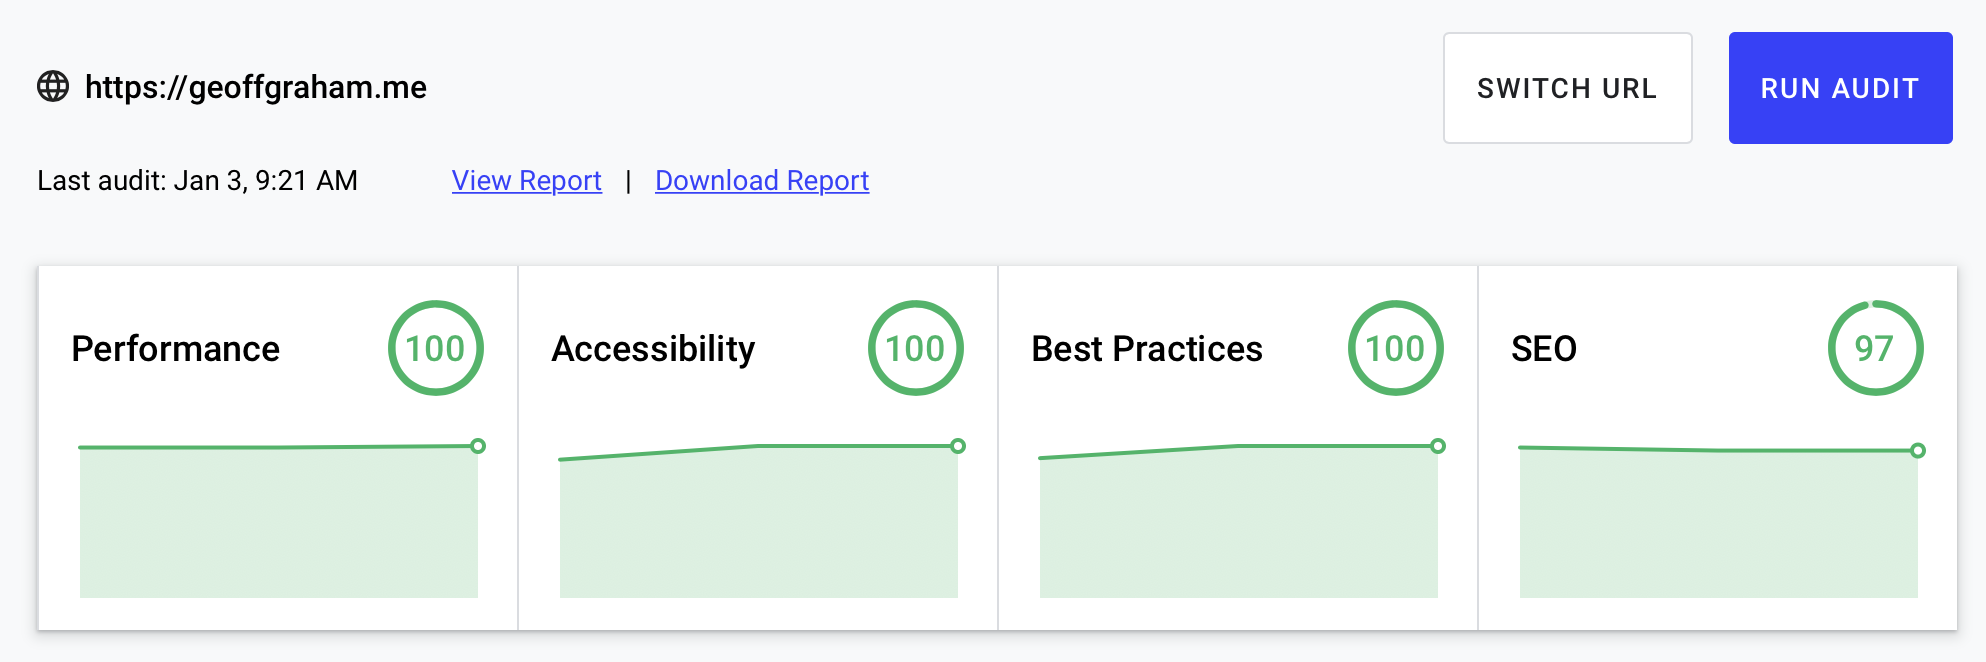 Lighthouse results showing an accessibility score of 100.